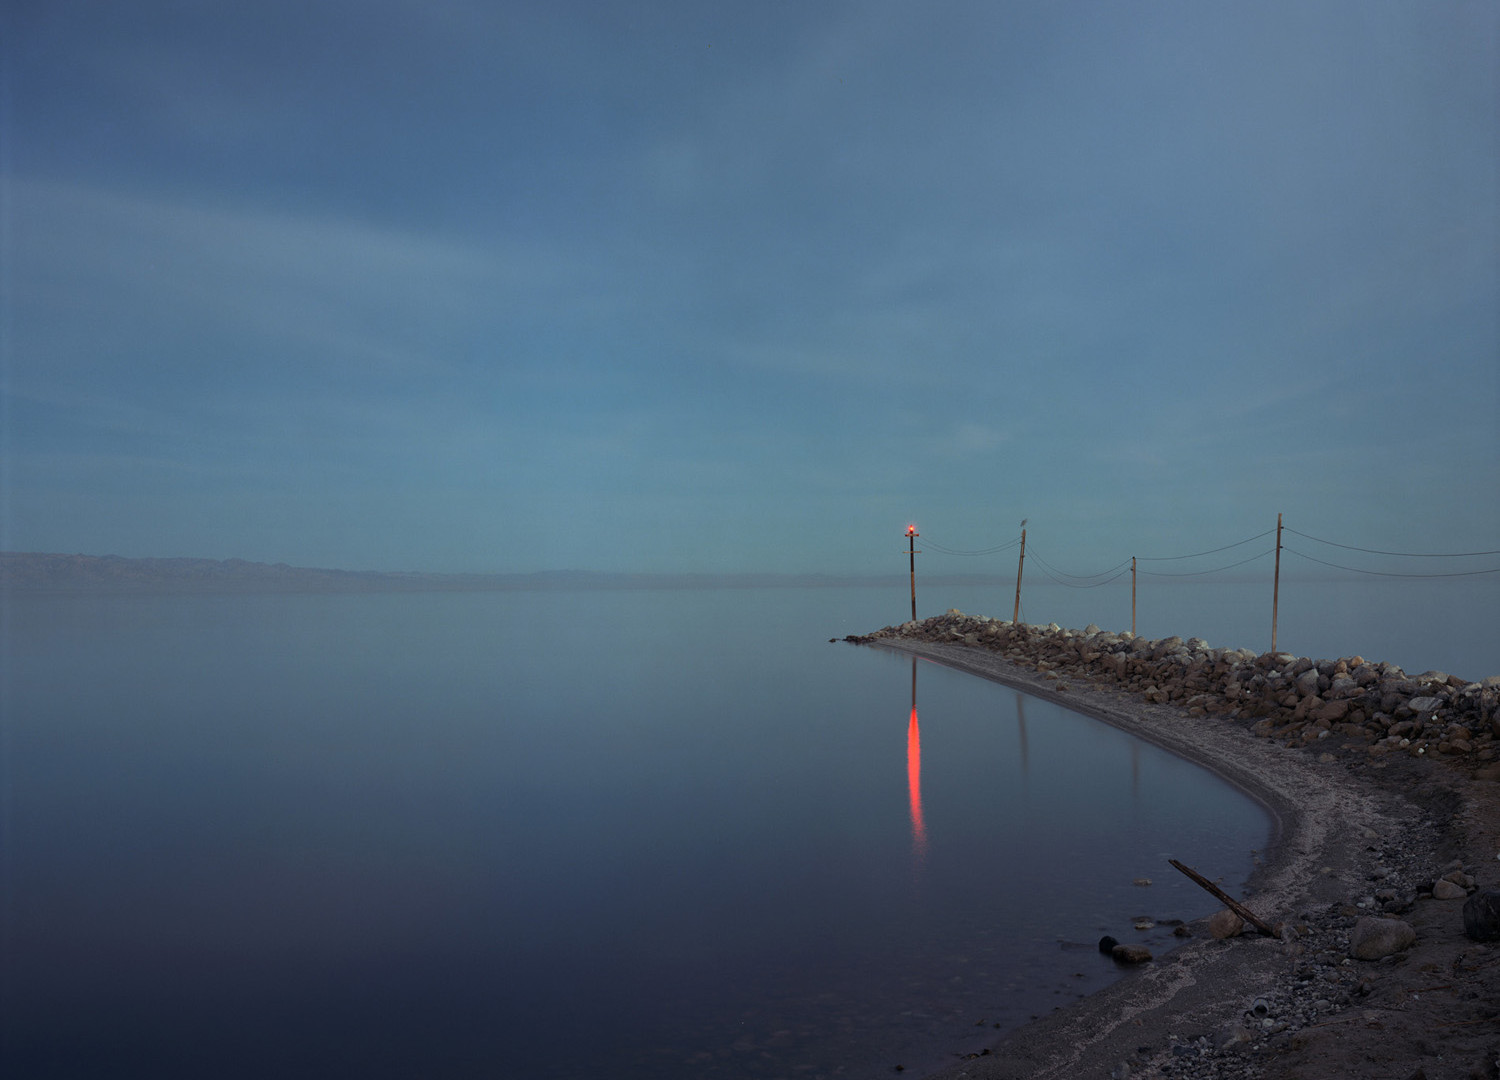 Richard Misrach, Red Beacon, Salton Sea, 1985